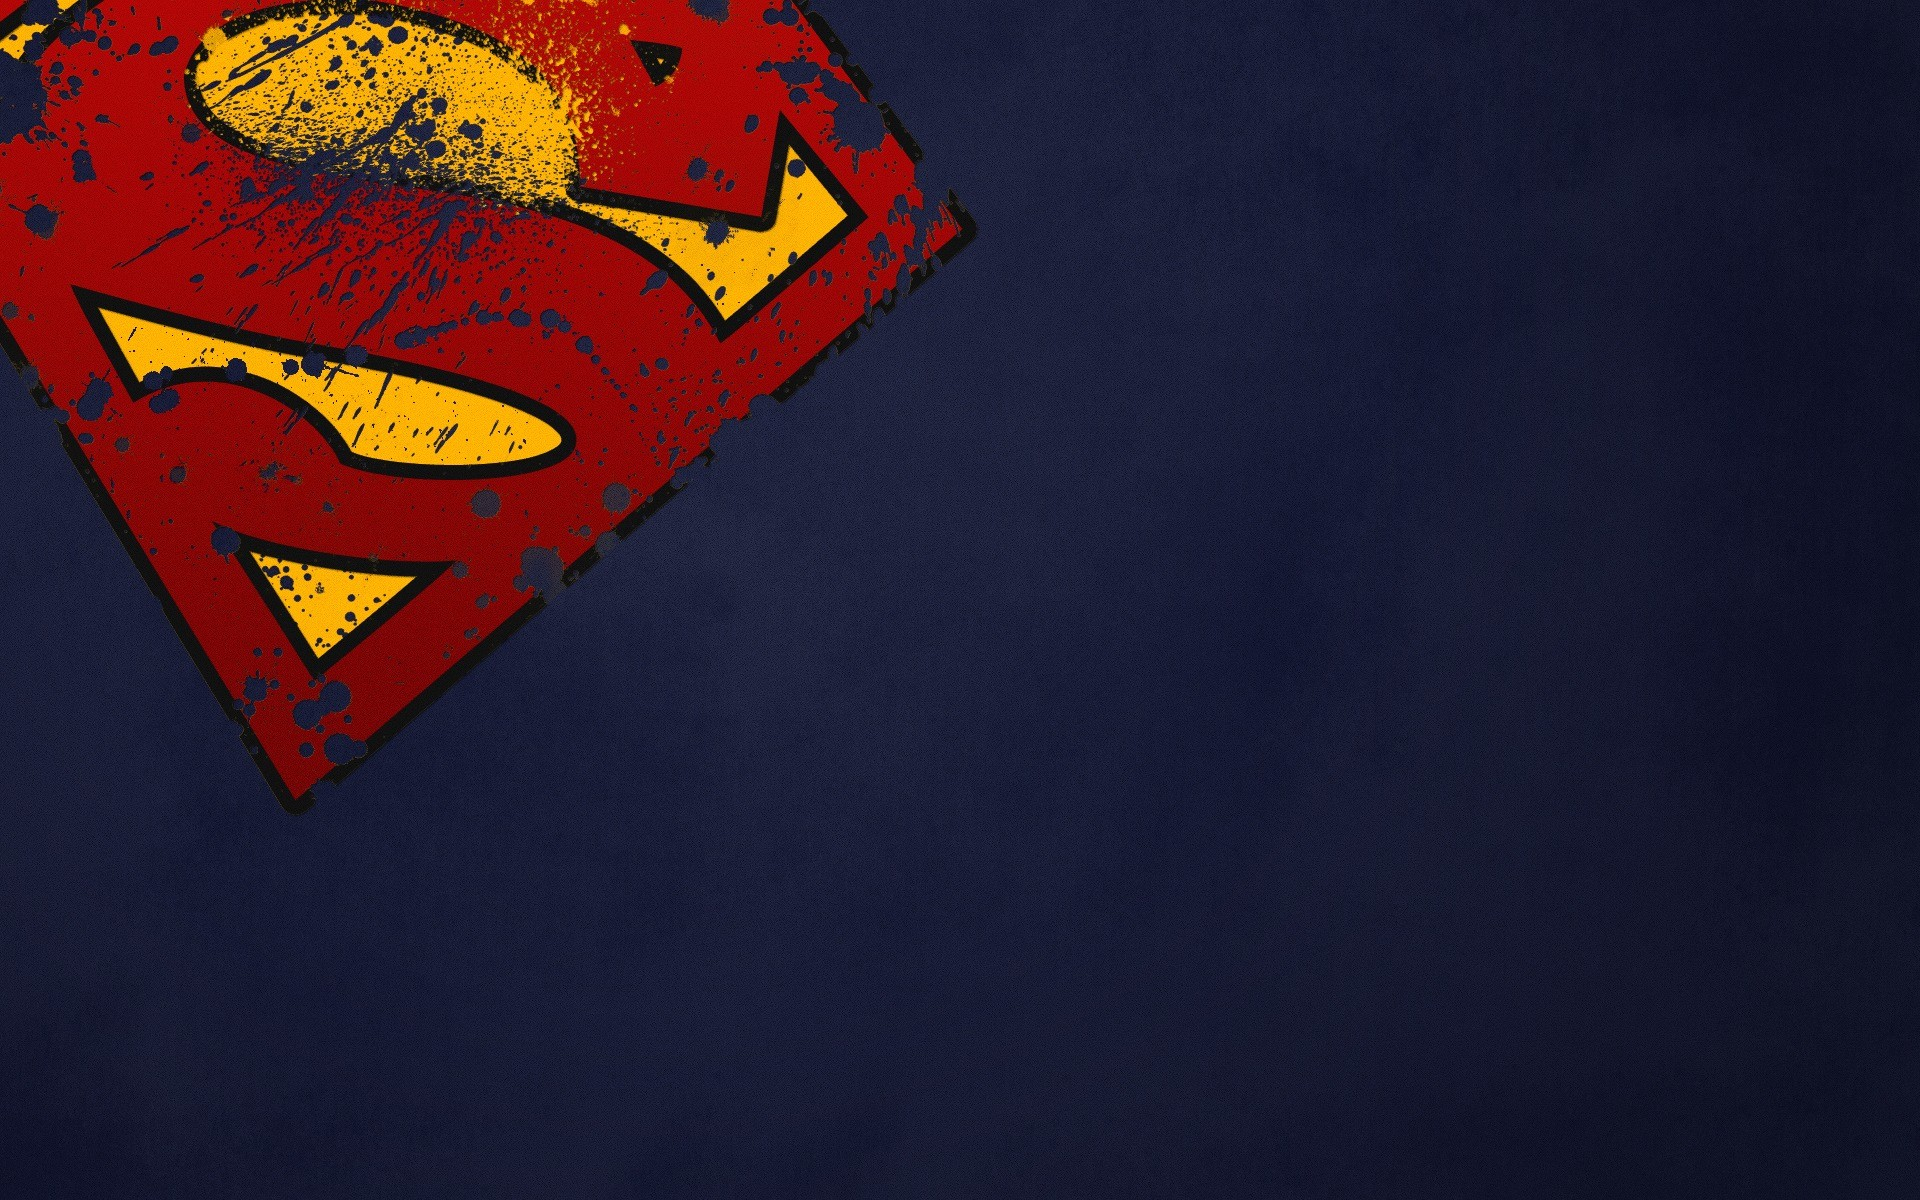 1920x1200 Superman logo HD Wallpaper 1920x1080 Superman logo HD Wallpaper